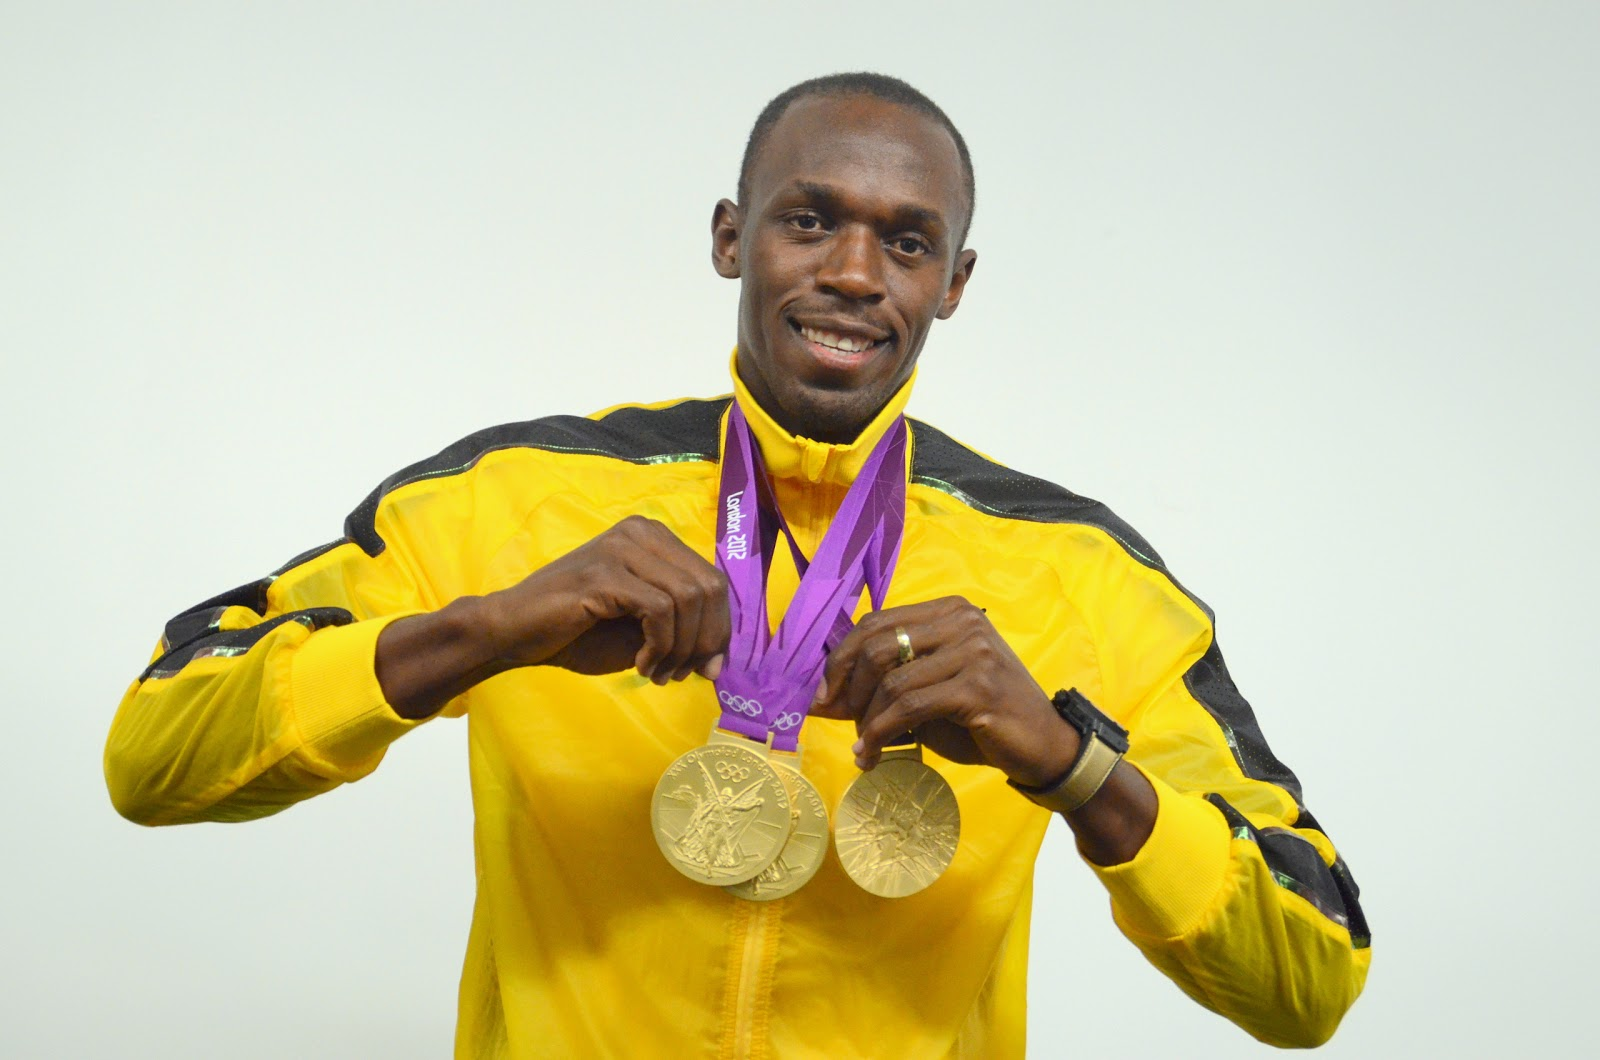 1600x1060 - Olympic Gold Metal Wallpapers 21